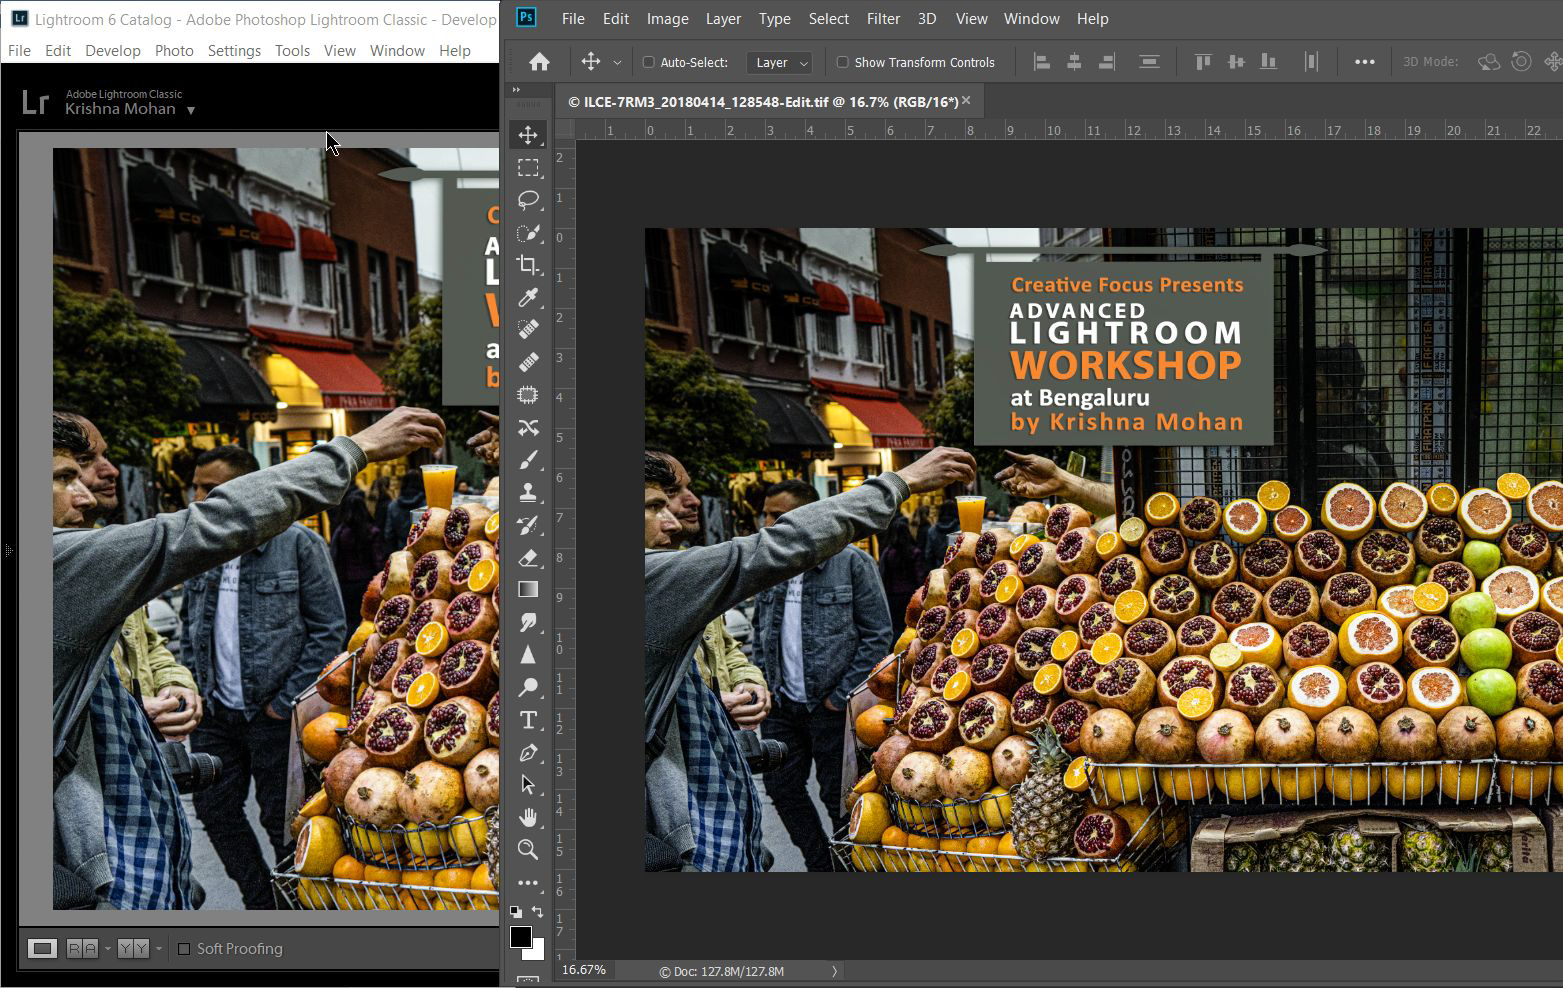 Transfer Images from Lightroom to Photoshop